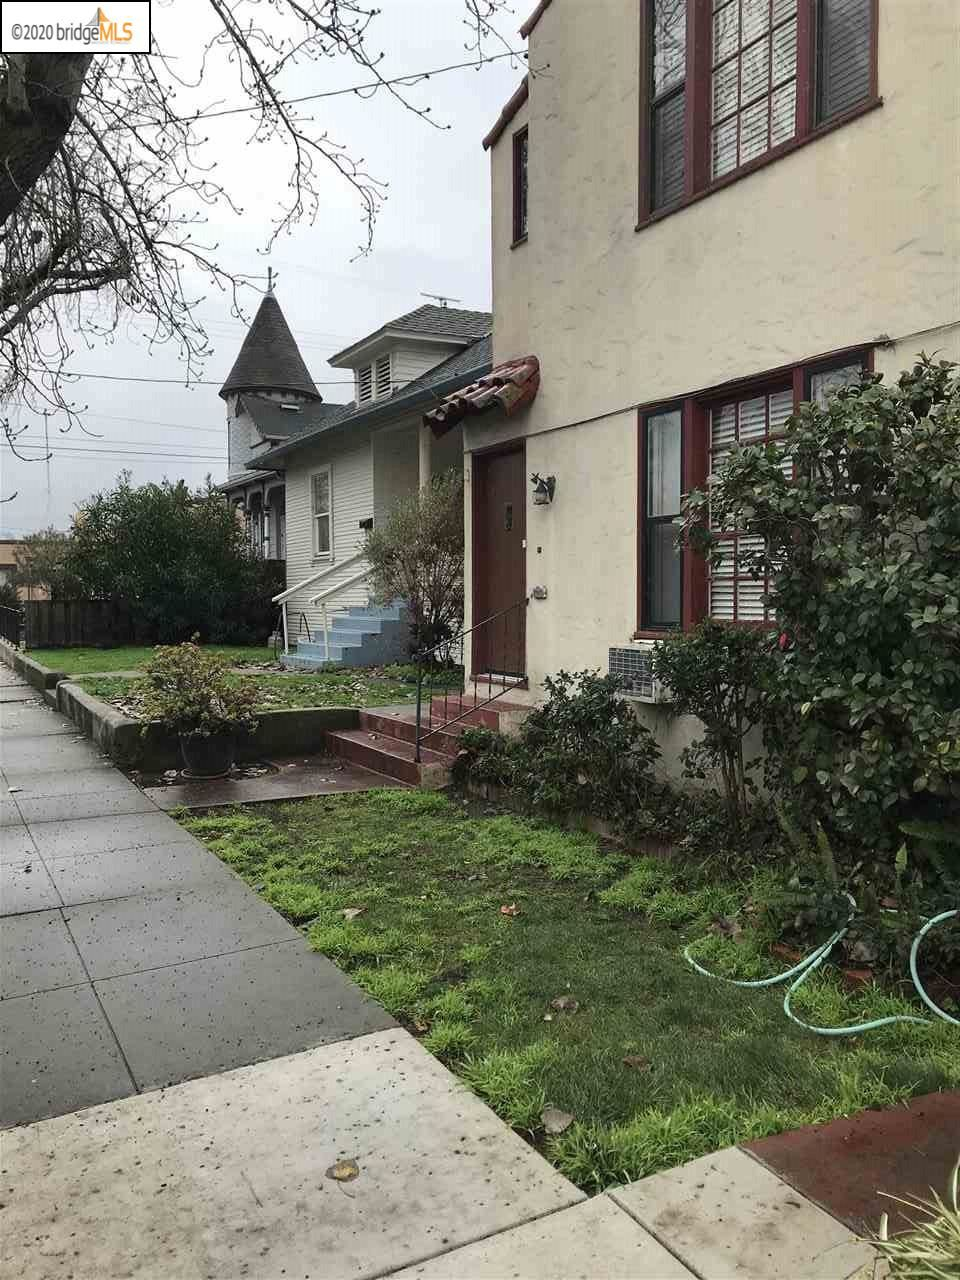 Photo of 504 E St #504 E st, ANTIOCH, CA 94509 (MLS # 40892035)